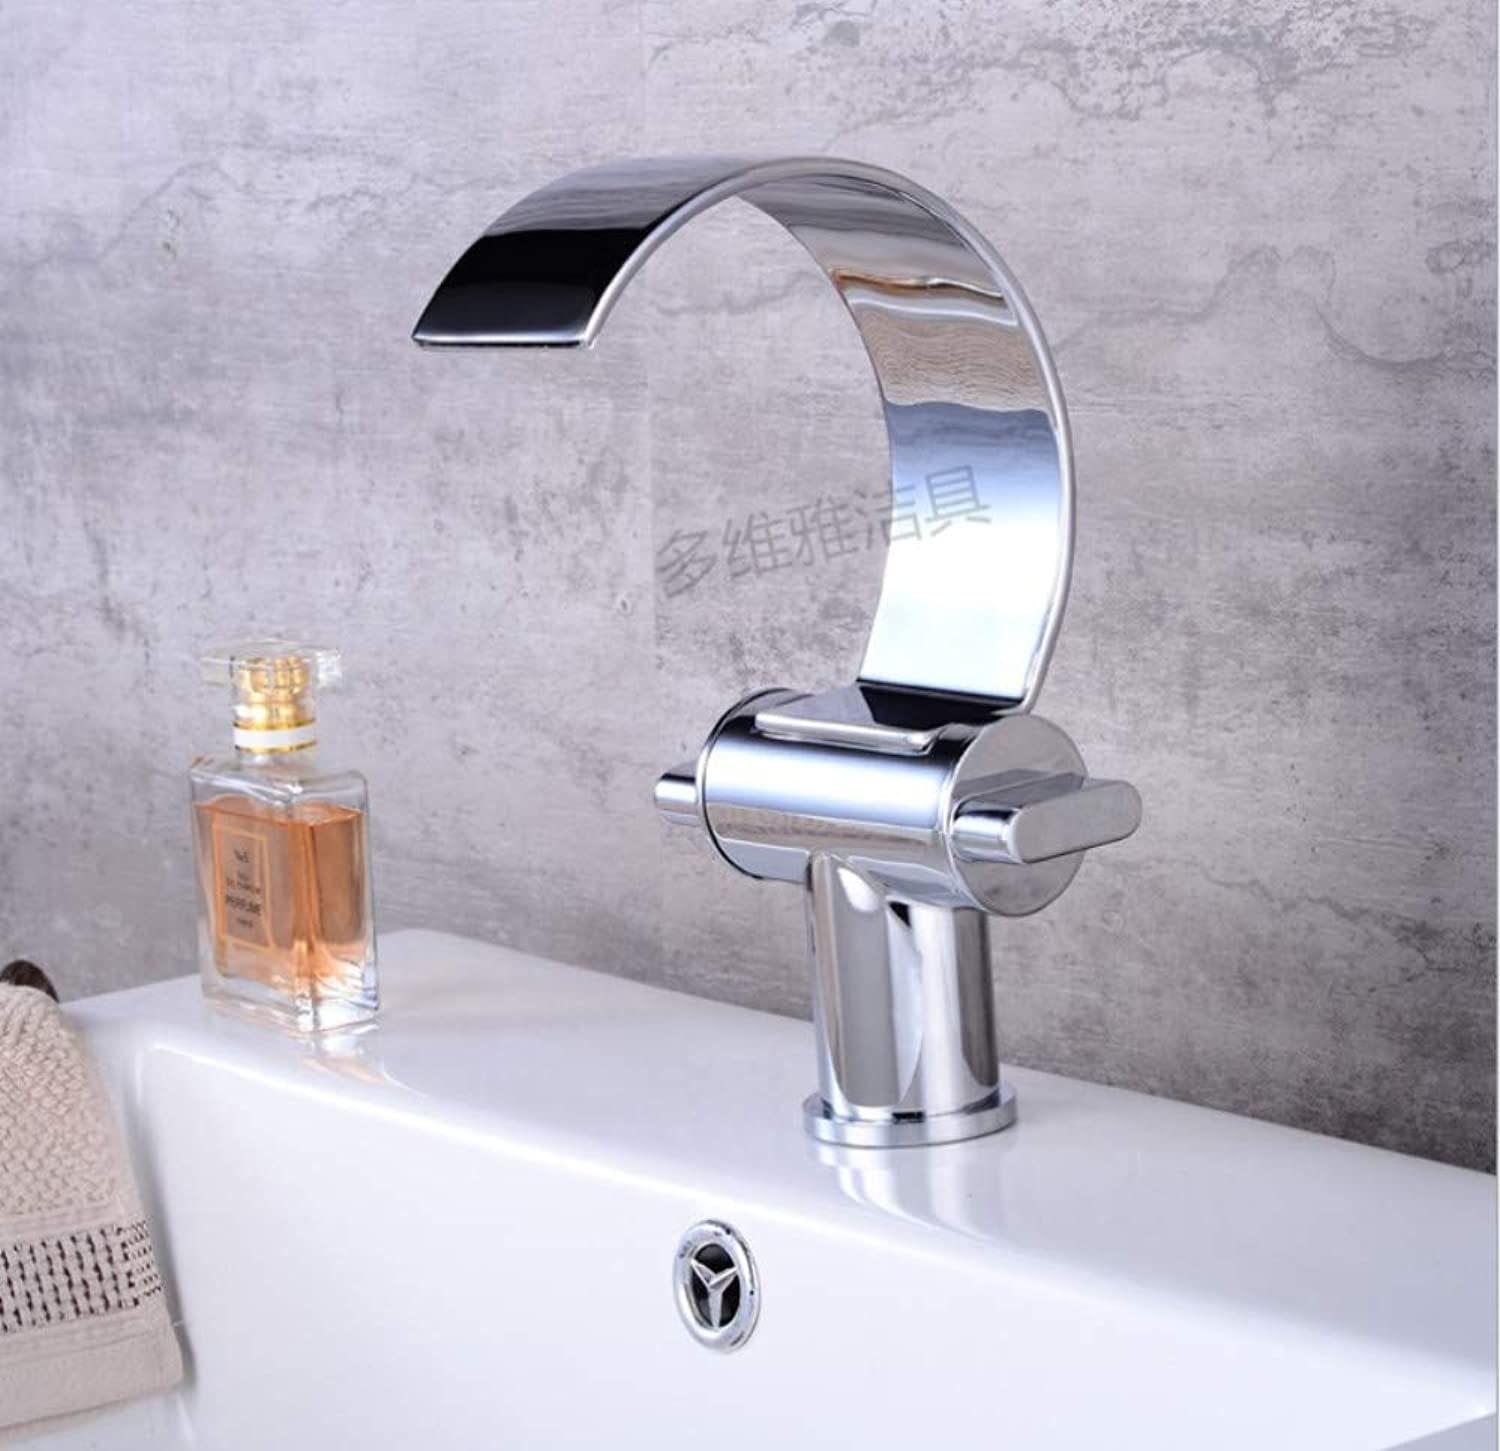 redOOY Basin Faucet Cold and Hot Water Waterfall Bathroom Faucet Single handle Basin Mixer Tap Deck Mount